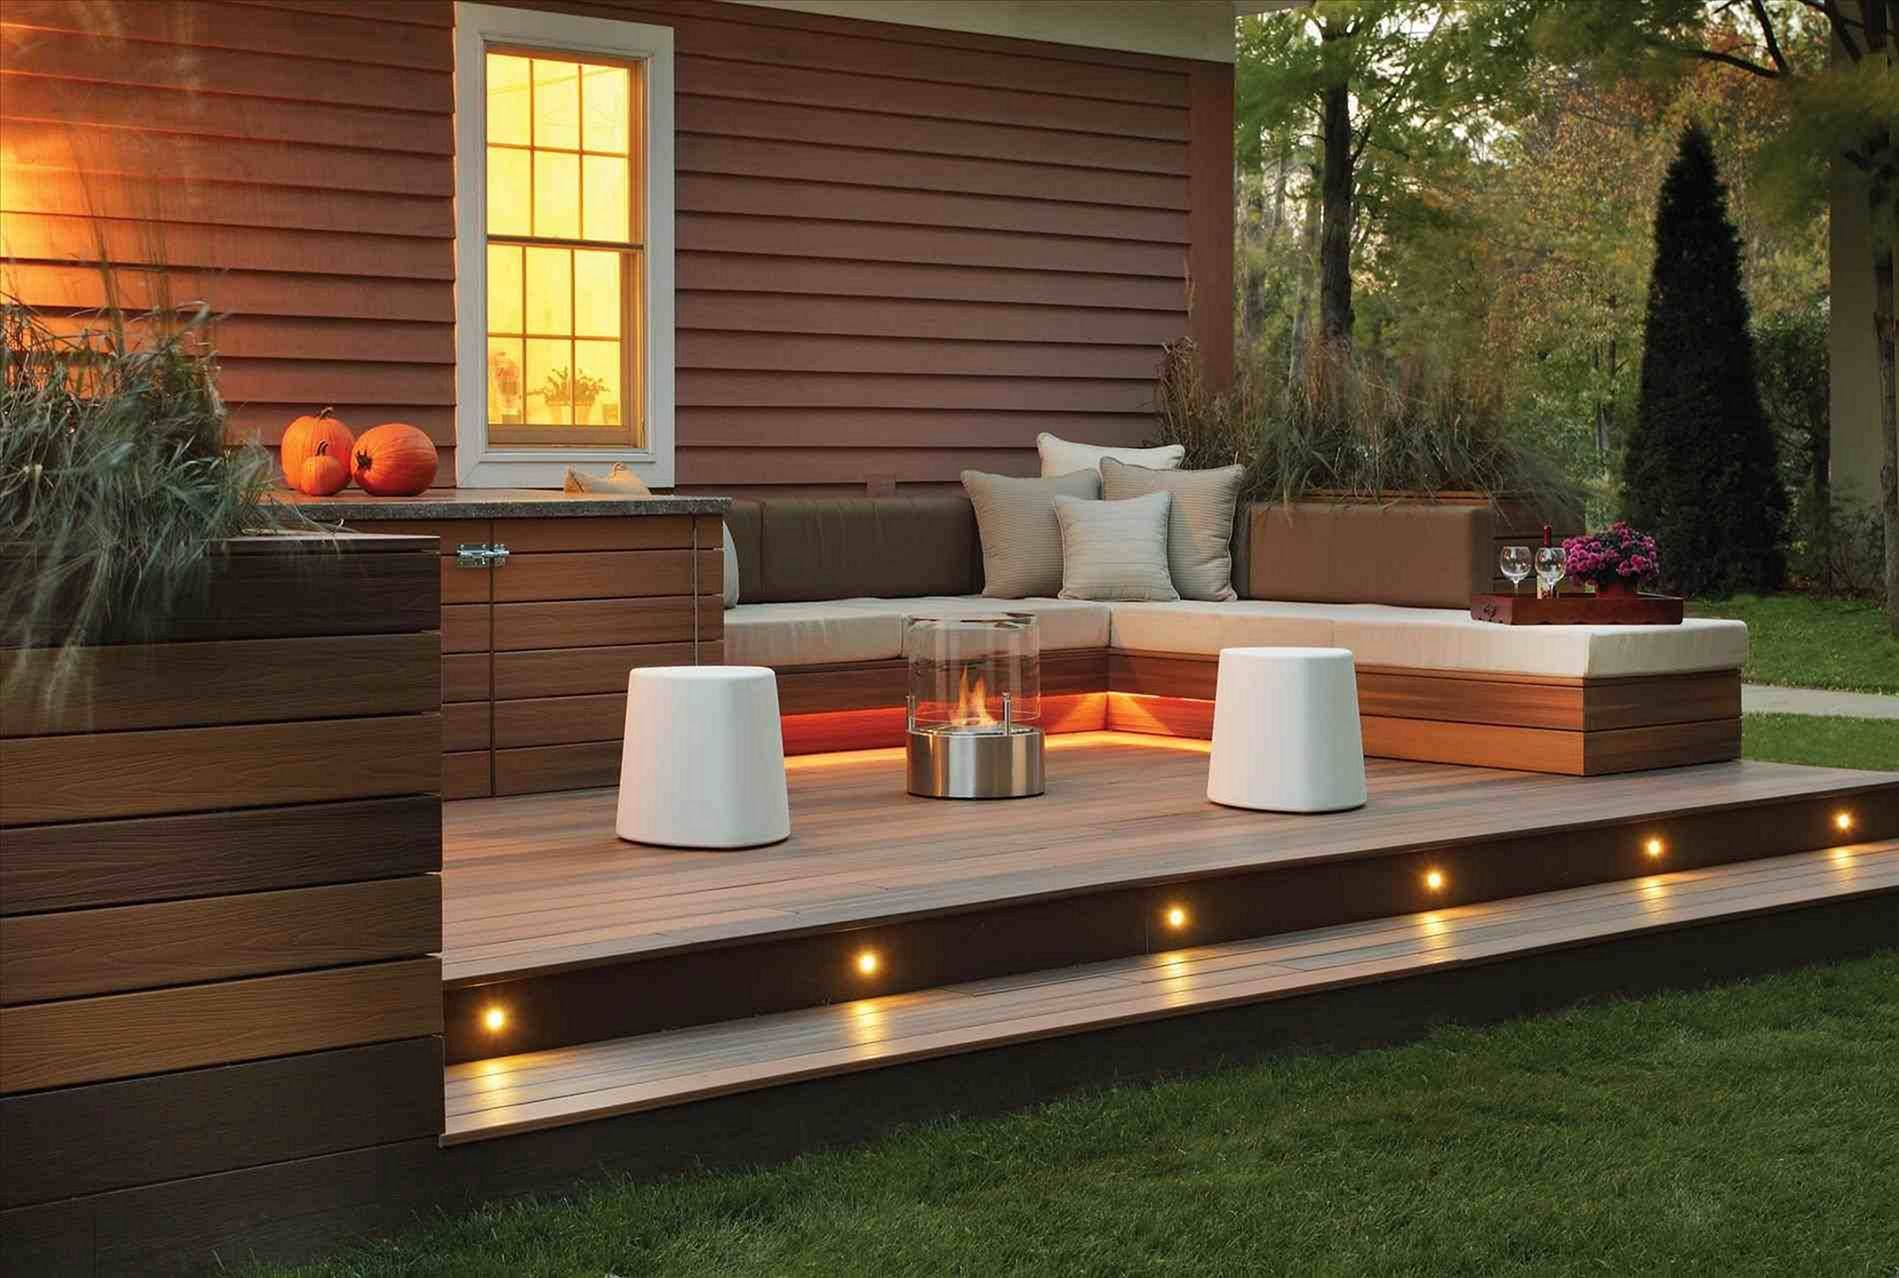 25 Gorgeous Wood Patio Ideas For Backyard Decoration On A Budget throughout Backyard Wood Patio Ideas